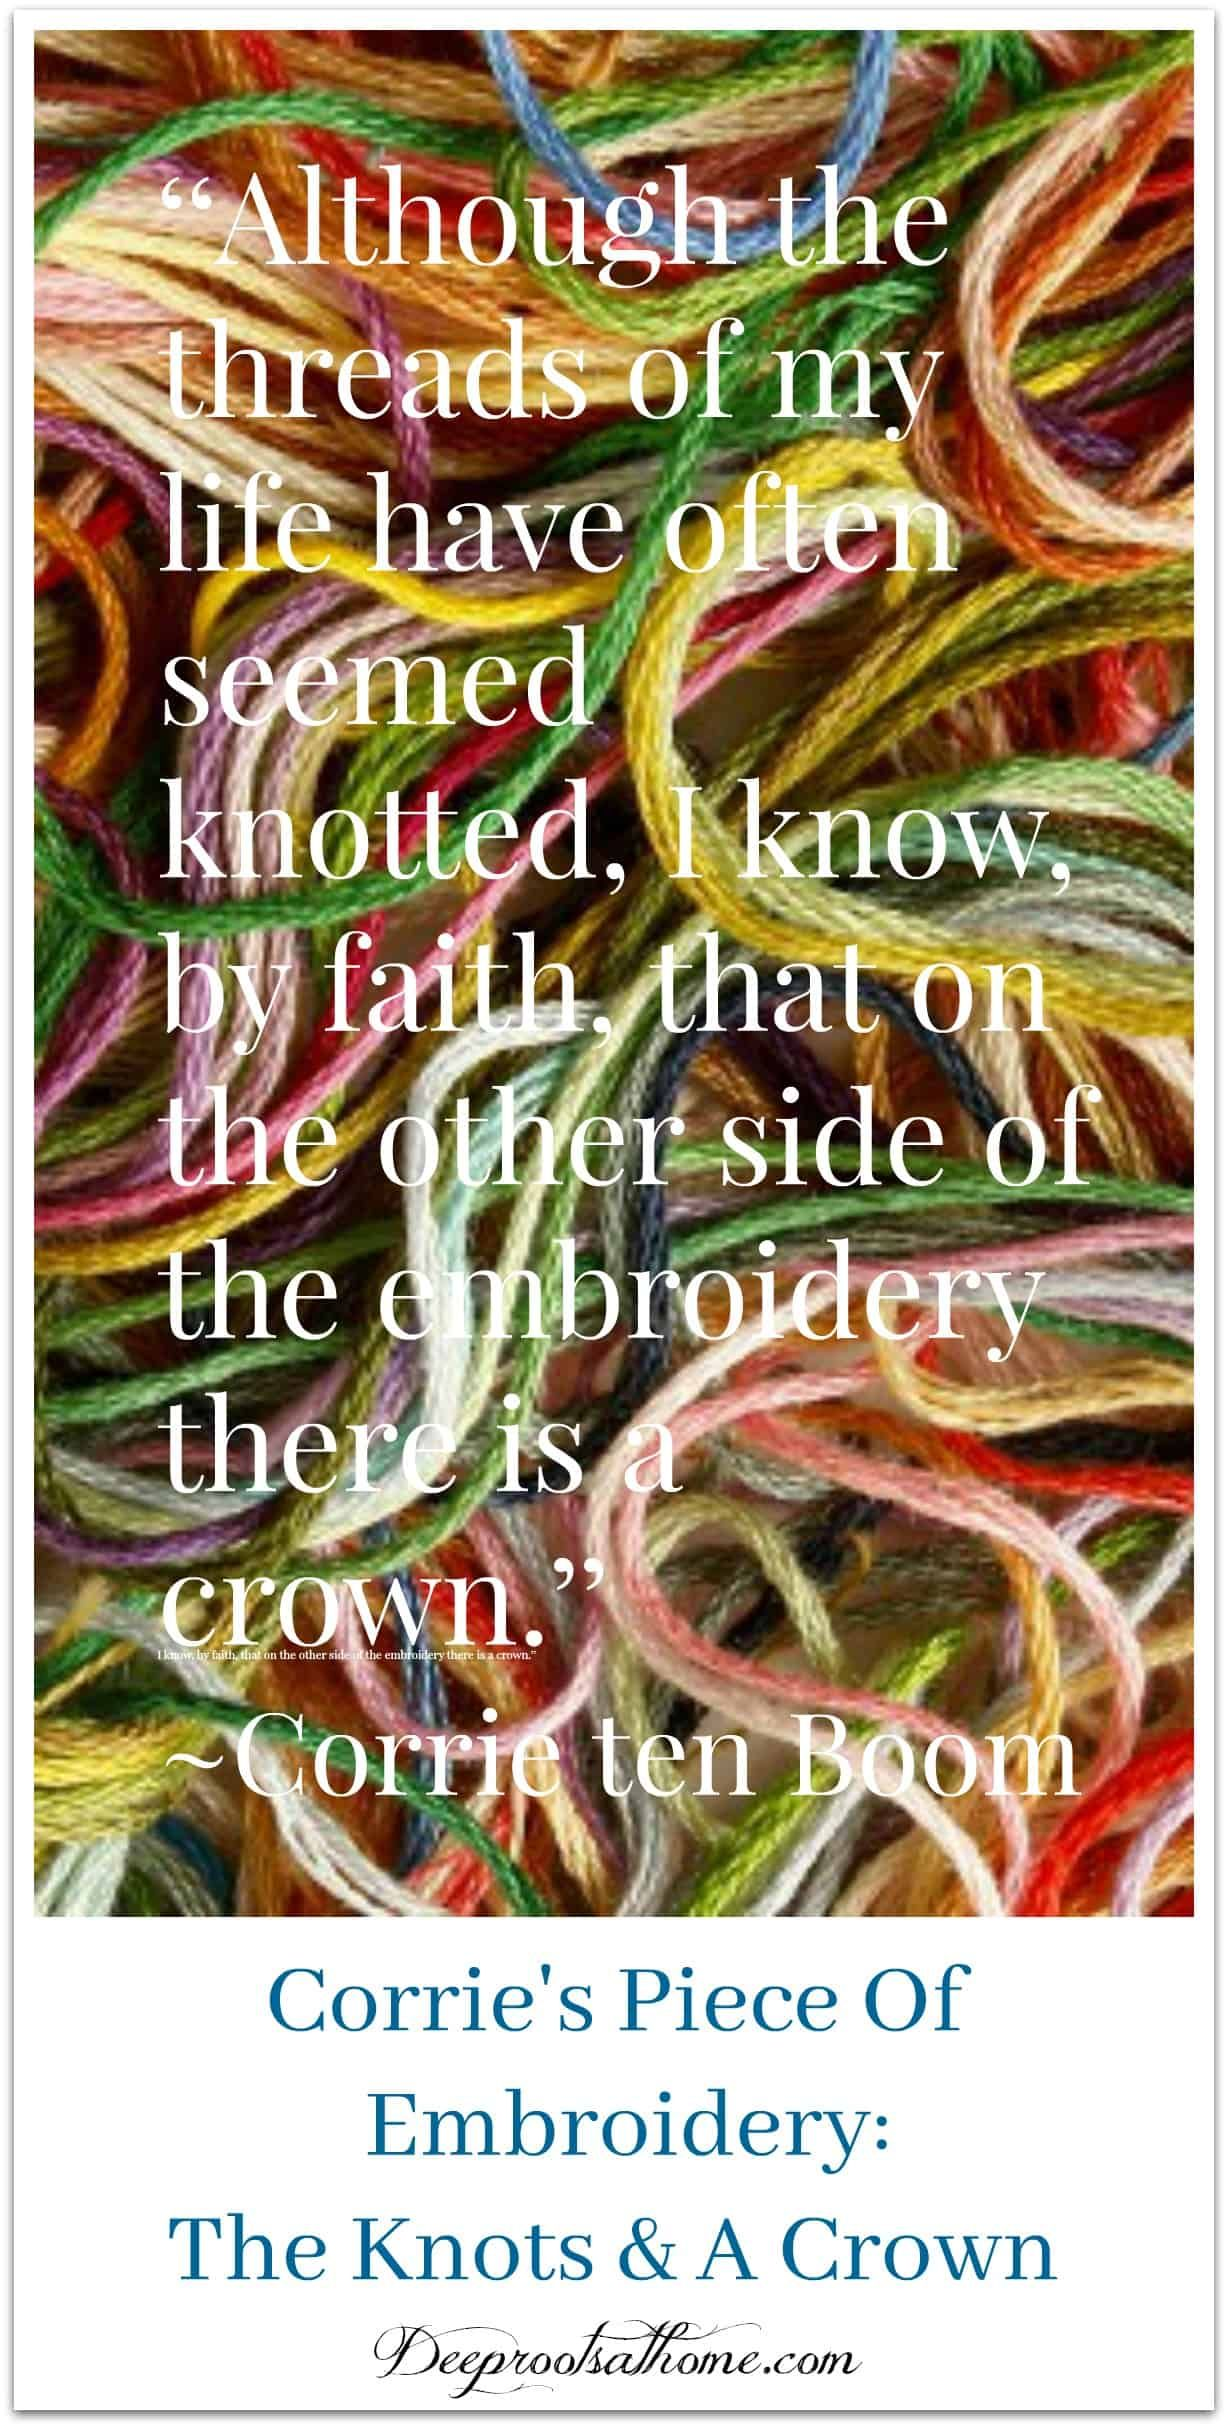 Corrie Ten Boom's Piece Of Embroidery | Knots & A Crown. No thread of experience—good or bad—is wasted. #faith #life #love #spirituality #art #artwork #lifestyle #quoteoftheday #quotes #embroidery #spiritual #help #helpful #quotestoliveby  #hero #heroes #courage #ideas #woman #trust #trustgod #story #sisters #truestory #crown #thread #embroiderydesigns #threadart #embroideryart #faith #jesus #jesuschrist #joy #forgiveness #courage #god #strength #poetry #victory #fri...  via @deeprootsathome